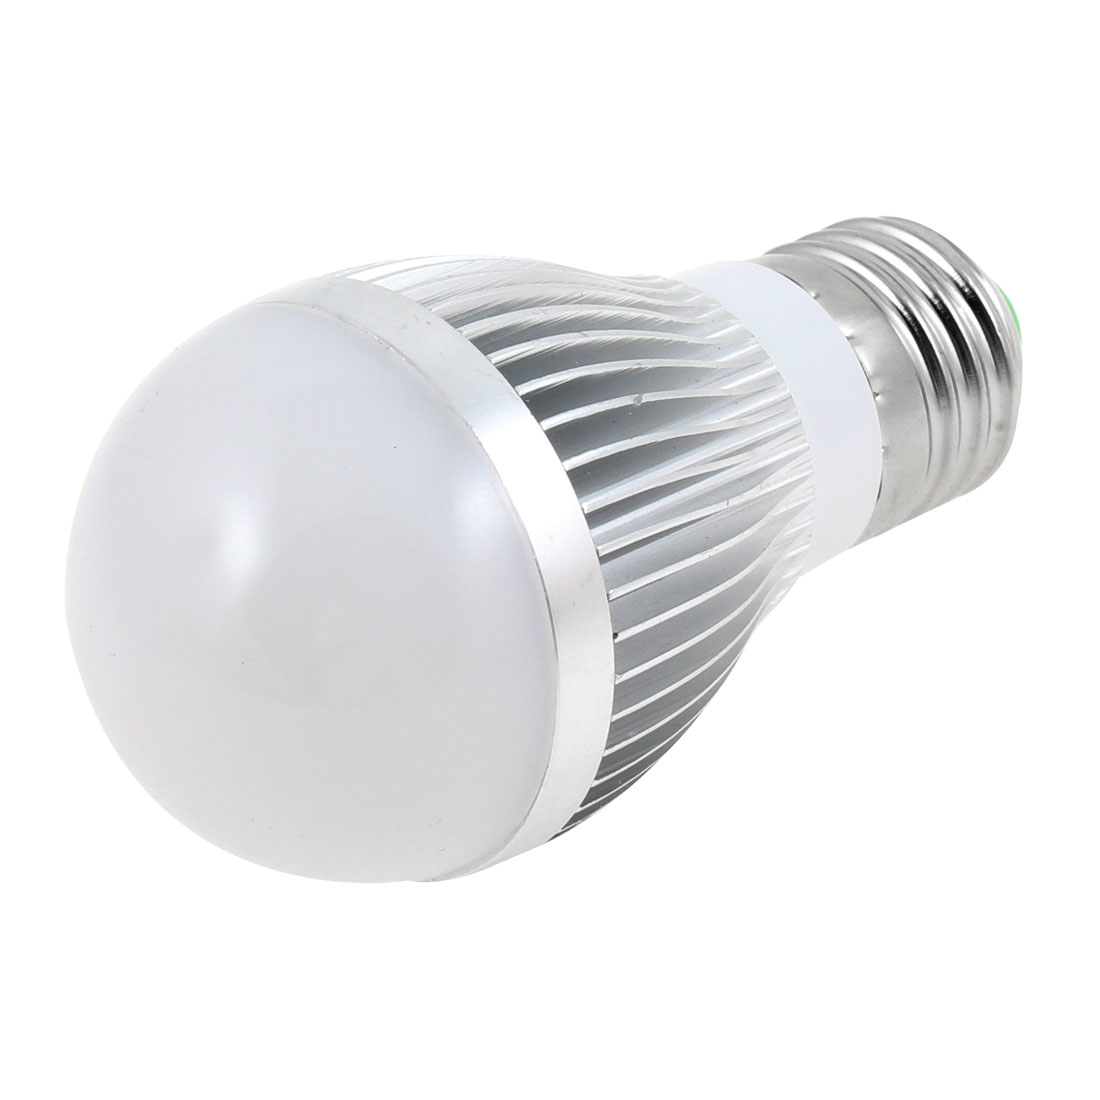 Home E27 Screw Base 3000-5000K Warm White LED Light Bulb 6W AC 220V